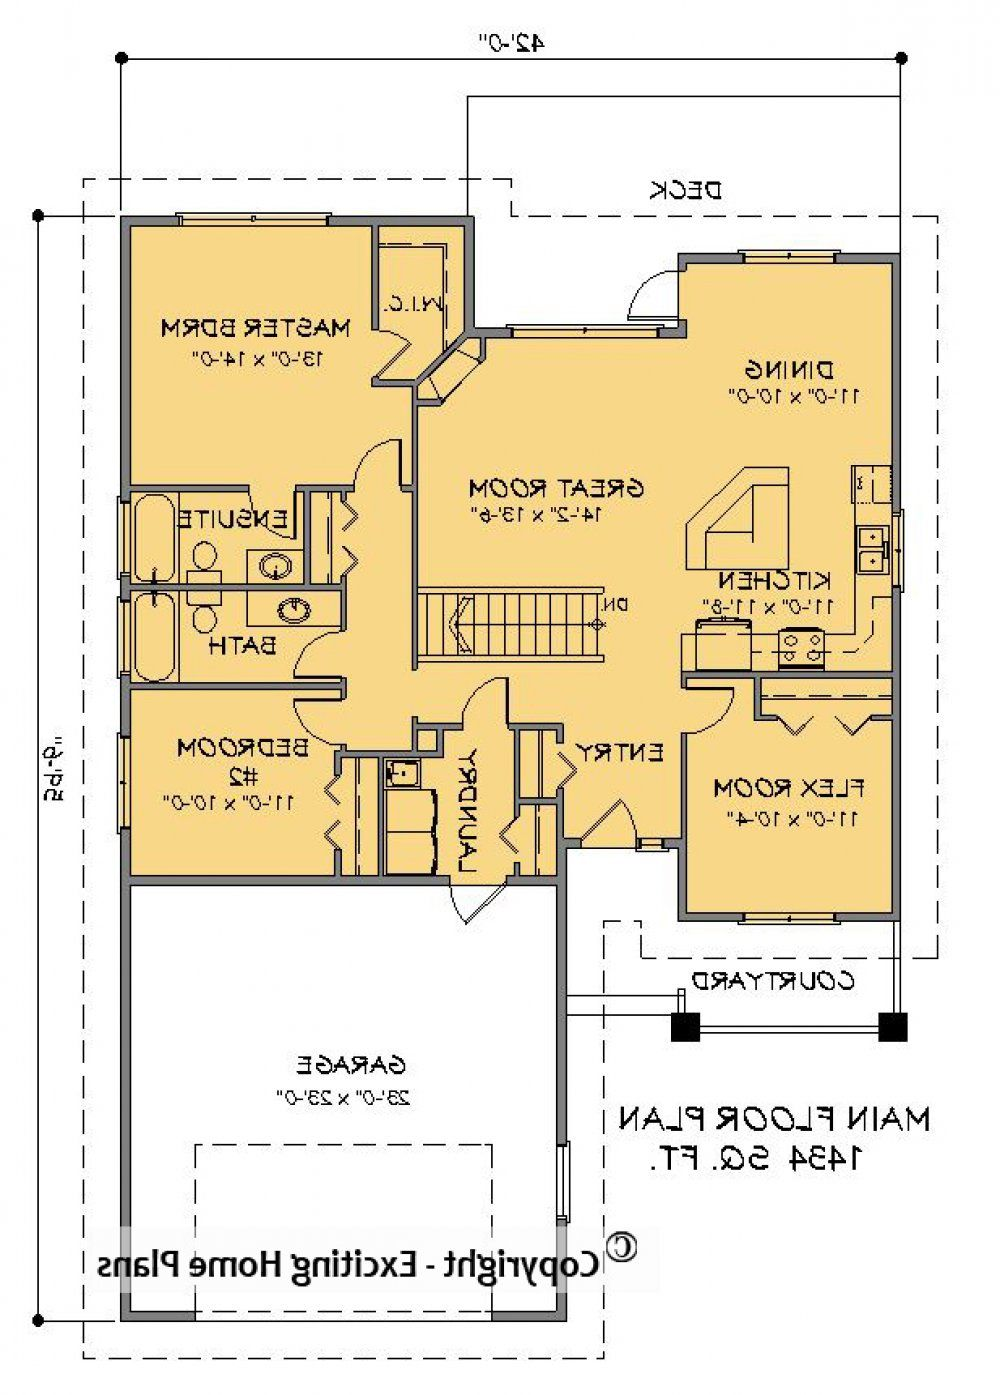 House Plan Information For Lewis 1 Storey Small Home Design Bungalow House Plans House Plans Online House Plans